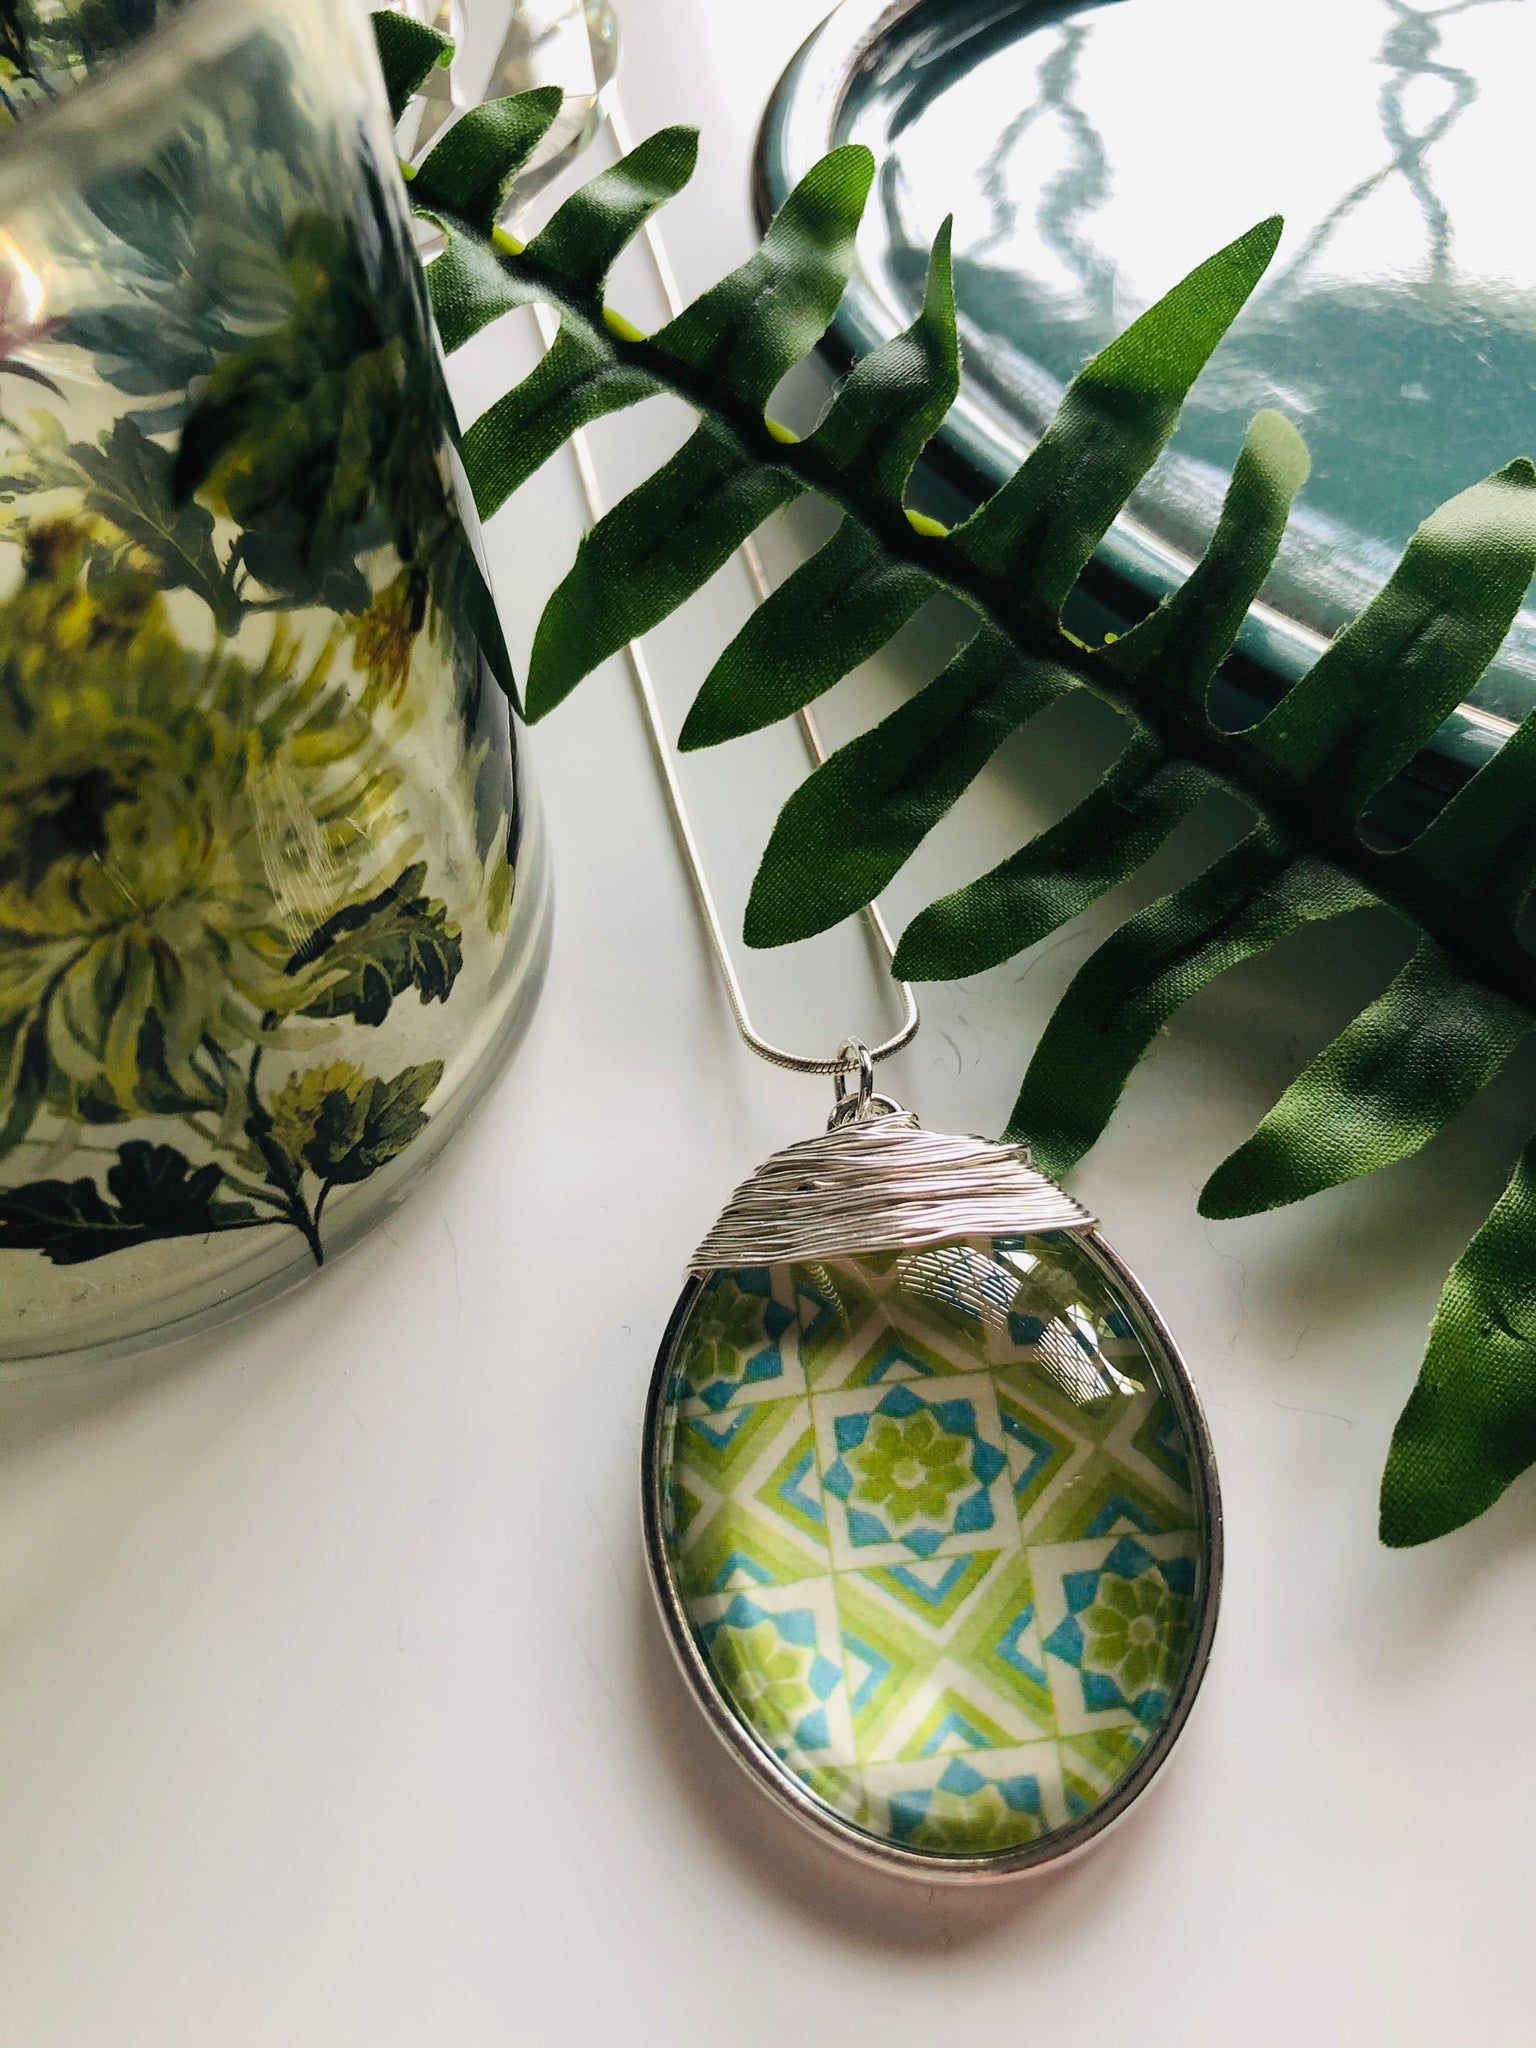 A large silver oval pendant with a mixture of green tones in a retro effect print and silver wire detailing